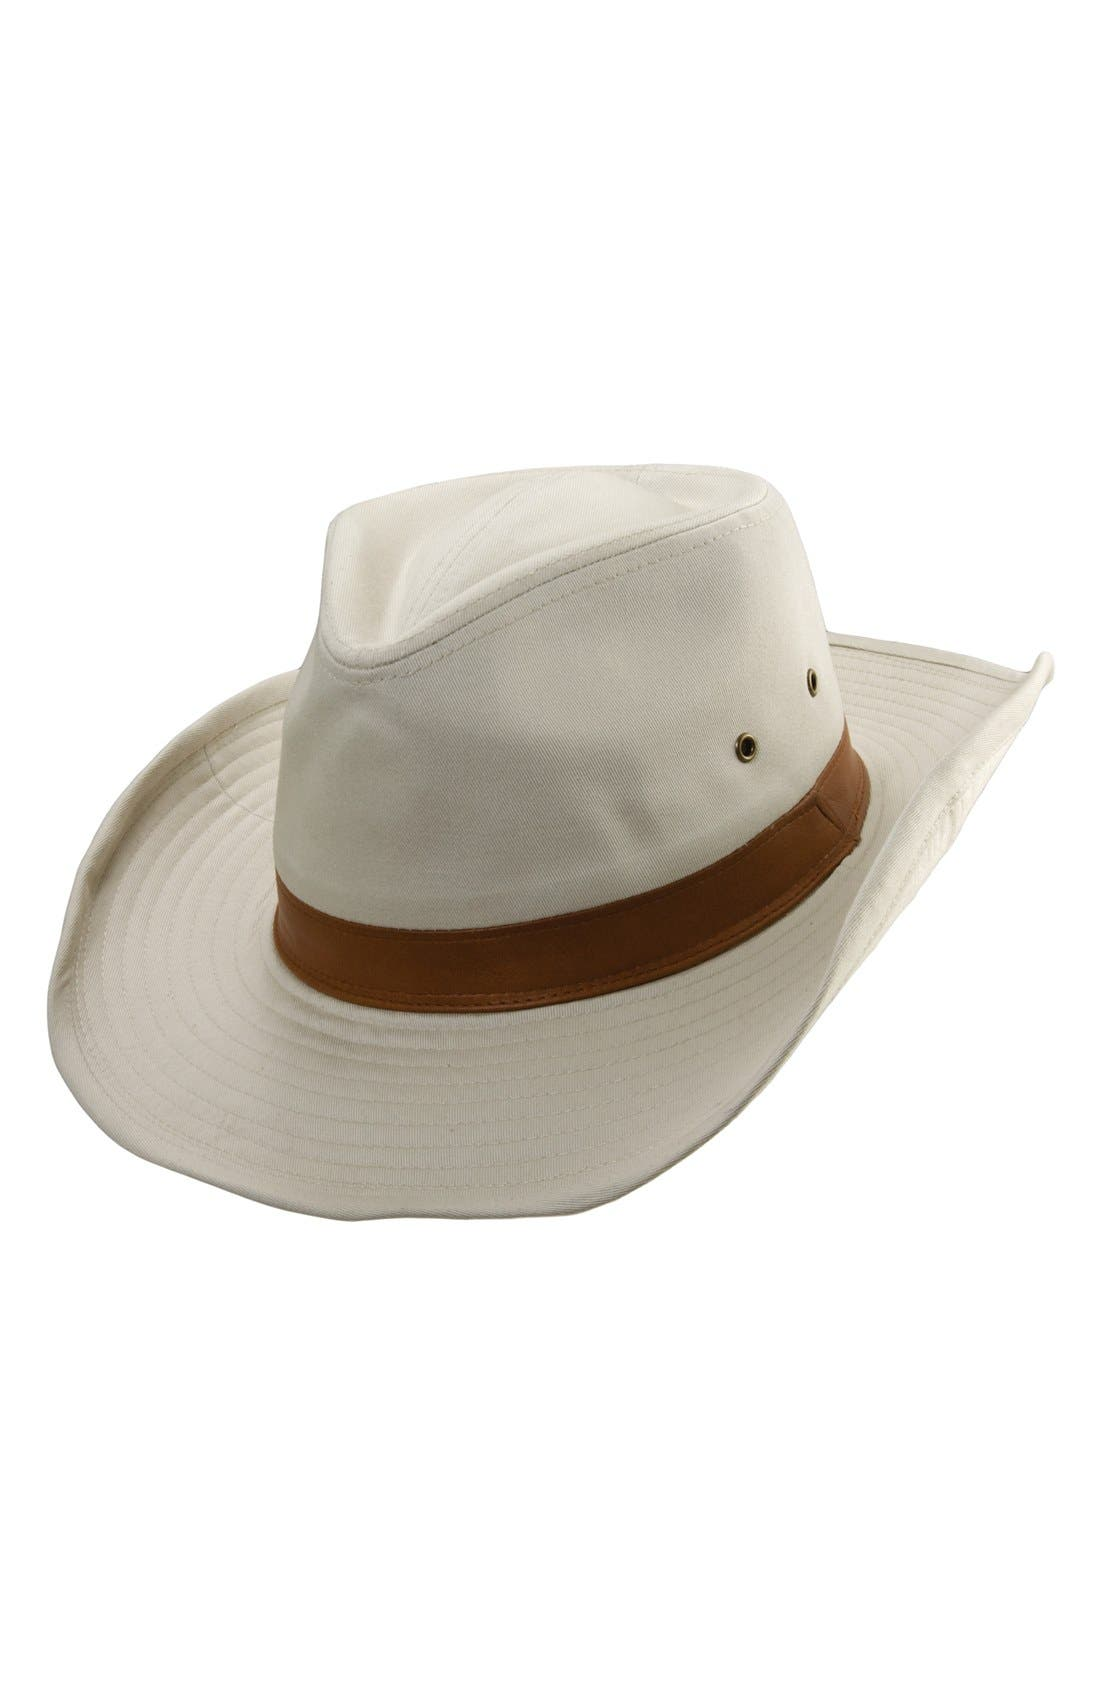 Cotton Outback Hat,                         Main,                         color, Putty